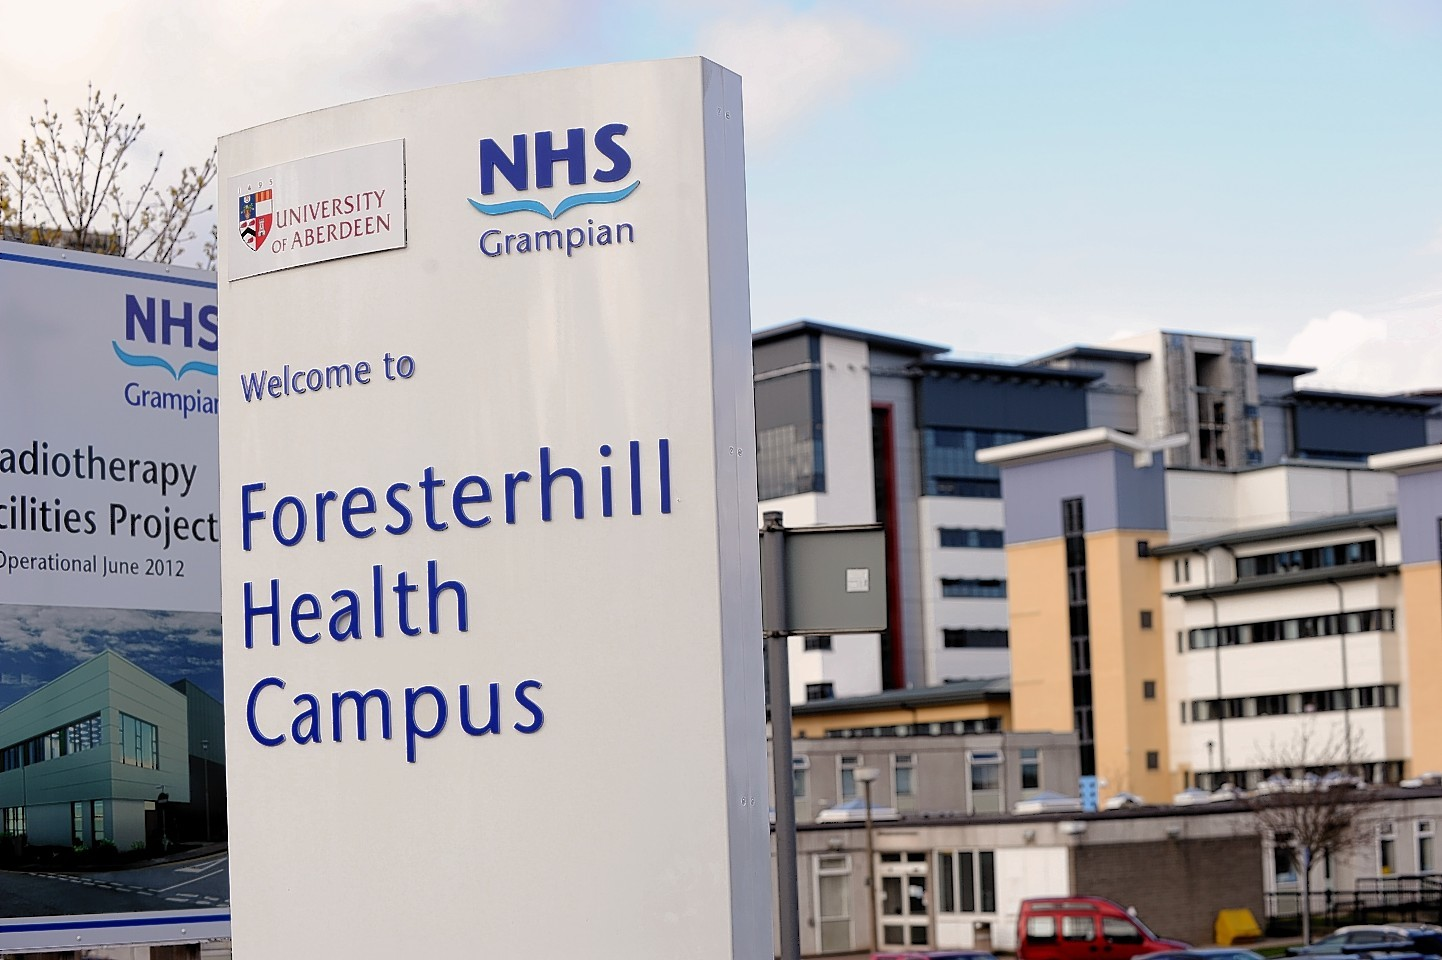 Foresterhill health campus